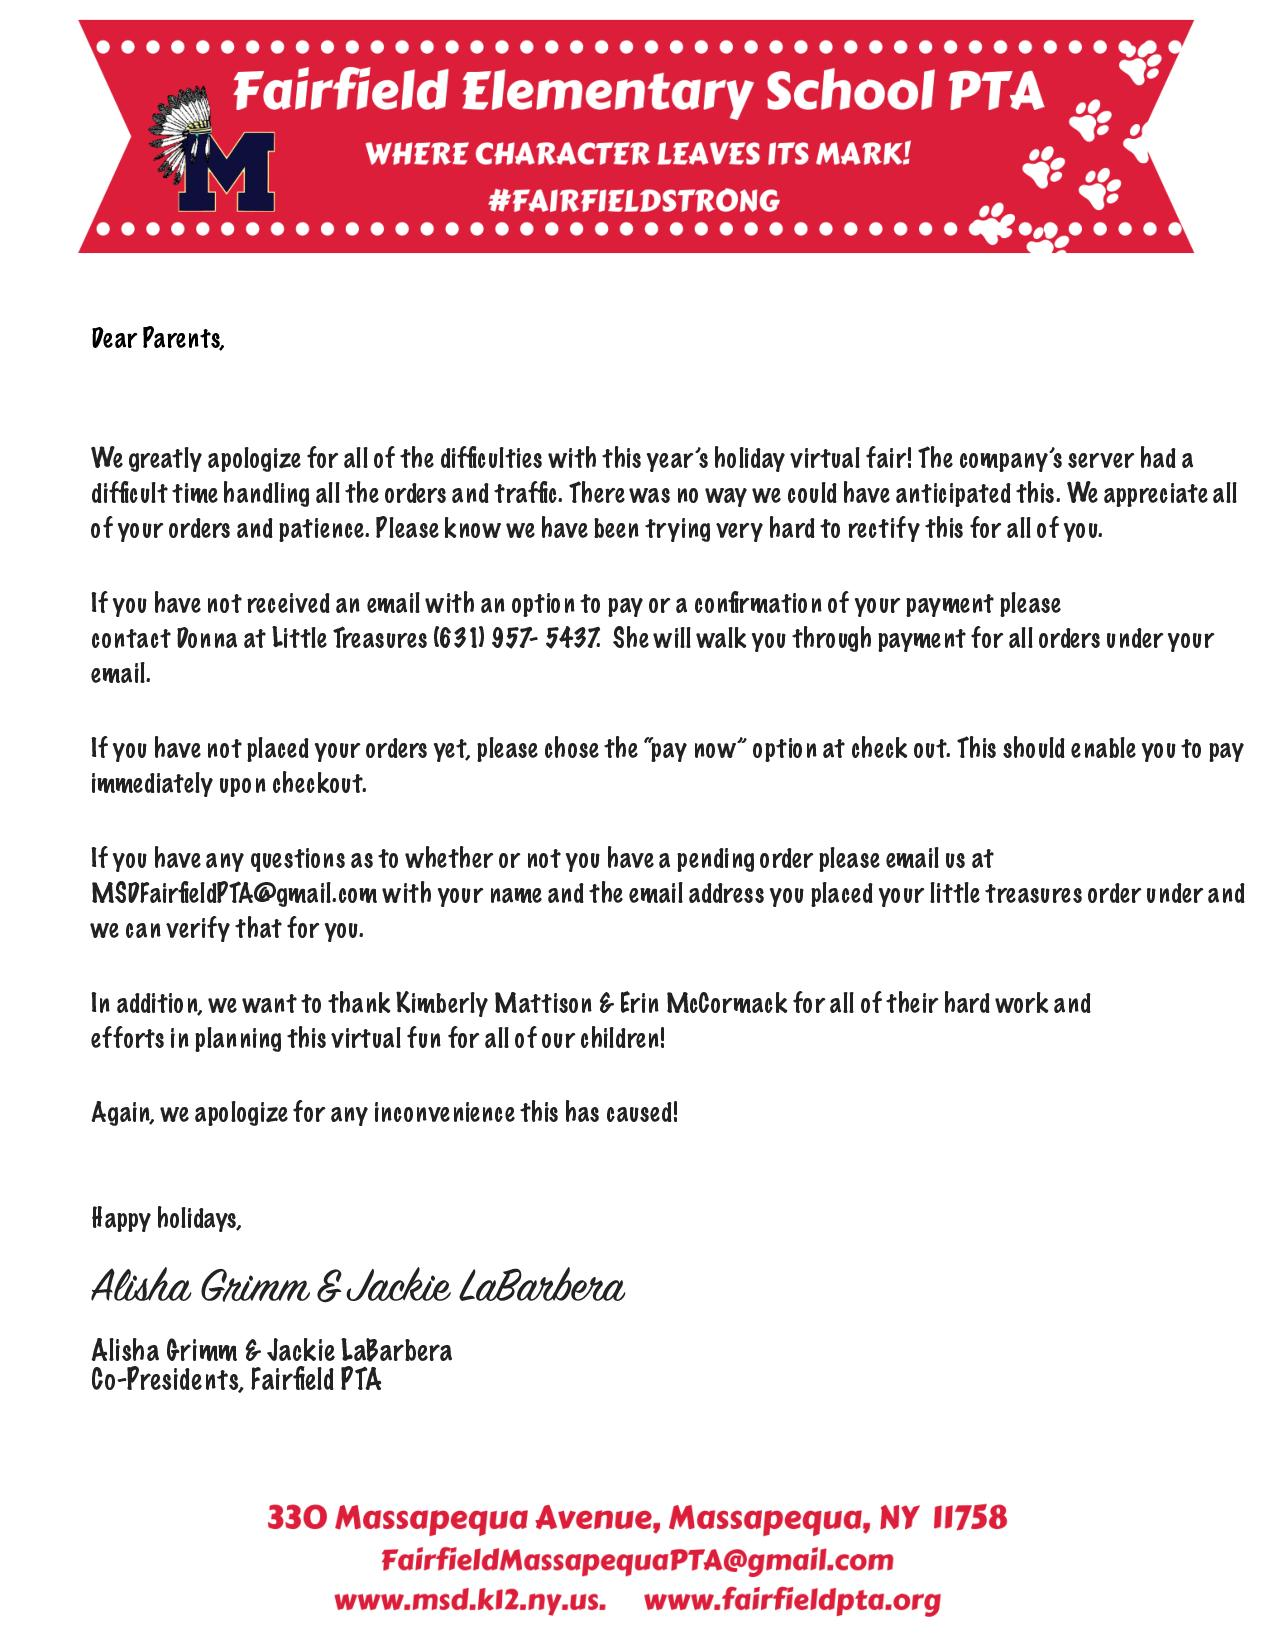 a letter from our Co-President's regarding the Virtual Holiday Fair